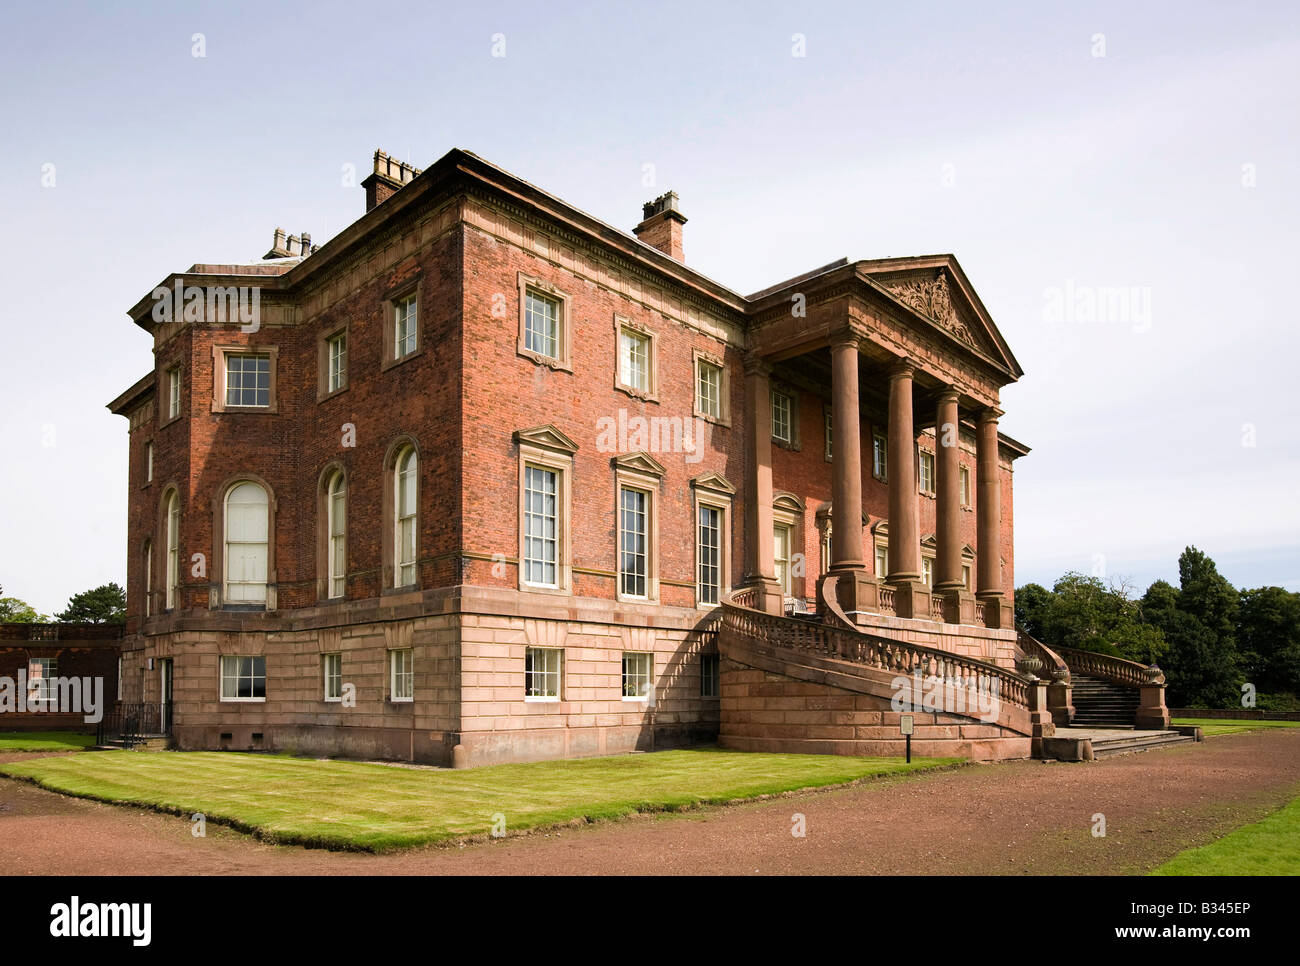 UK Cheshire Knutsford Tabley House 19th csntury mansion designd by John Carr of York 1769 - Stock Image